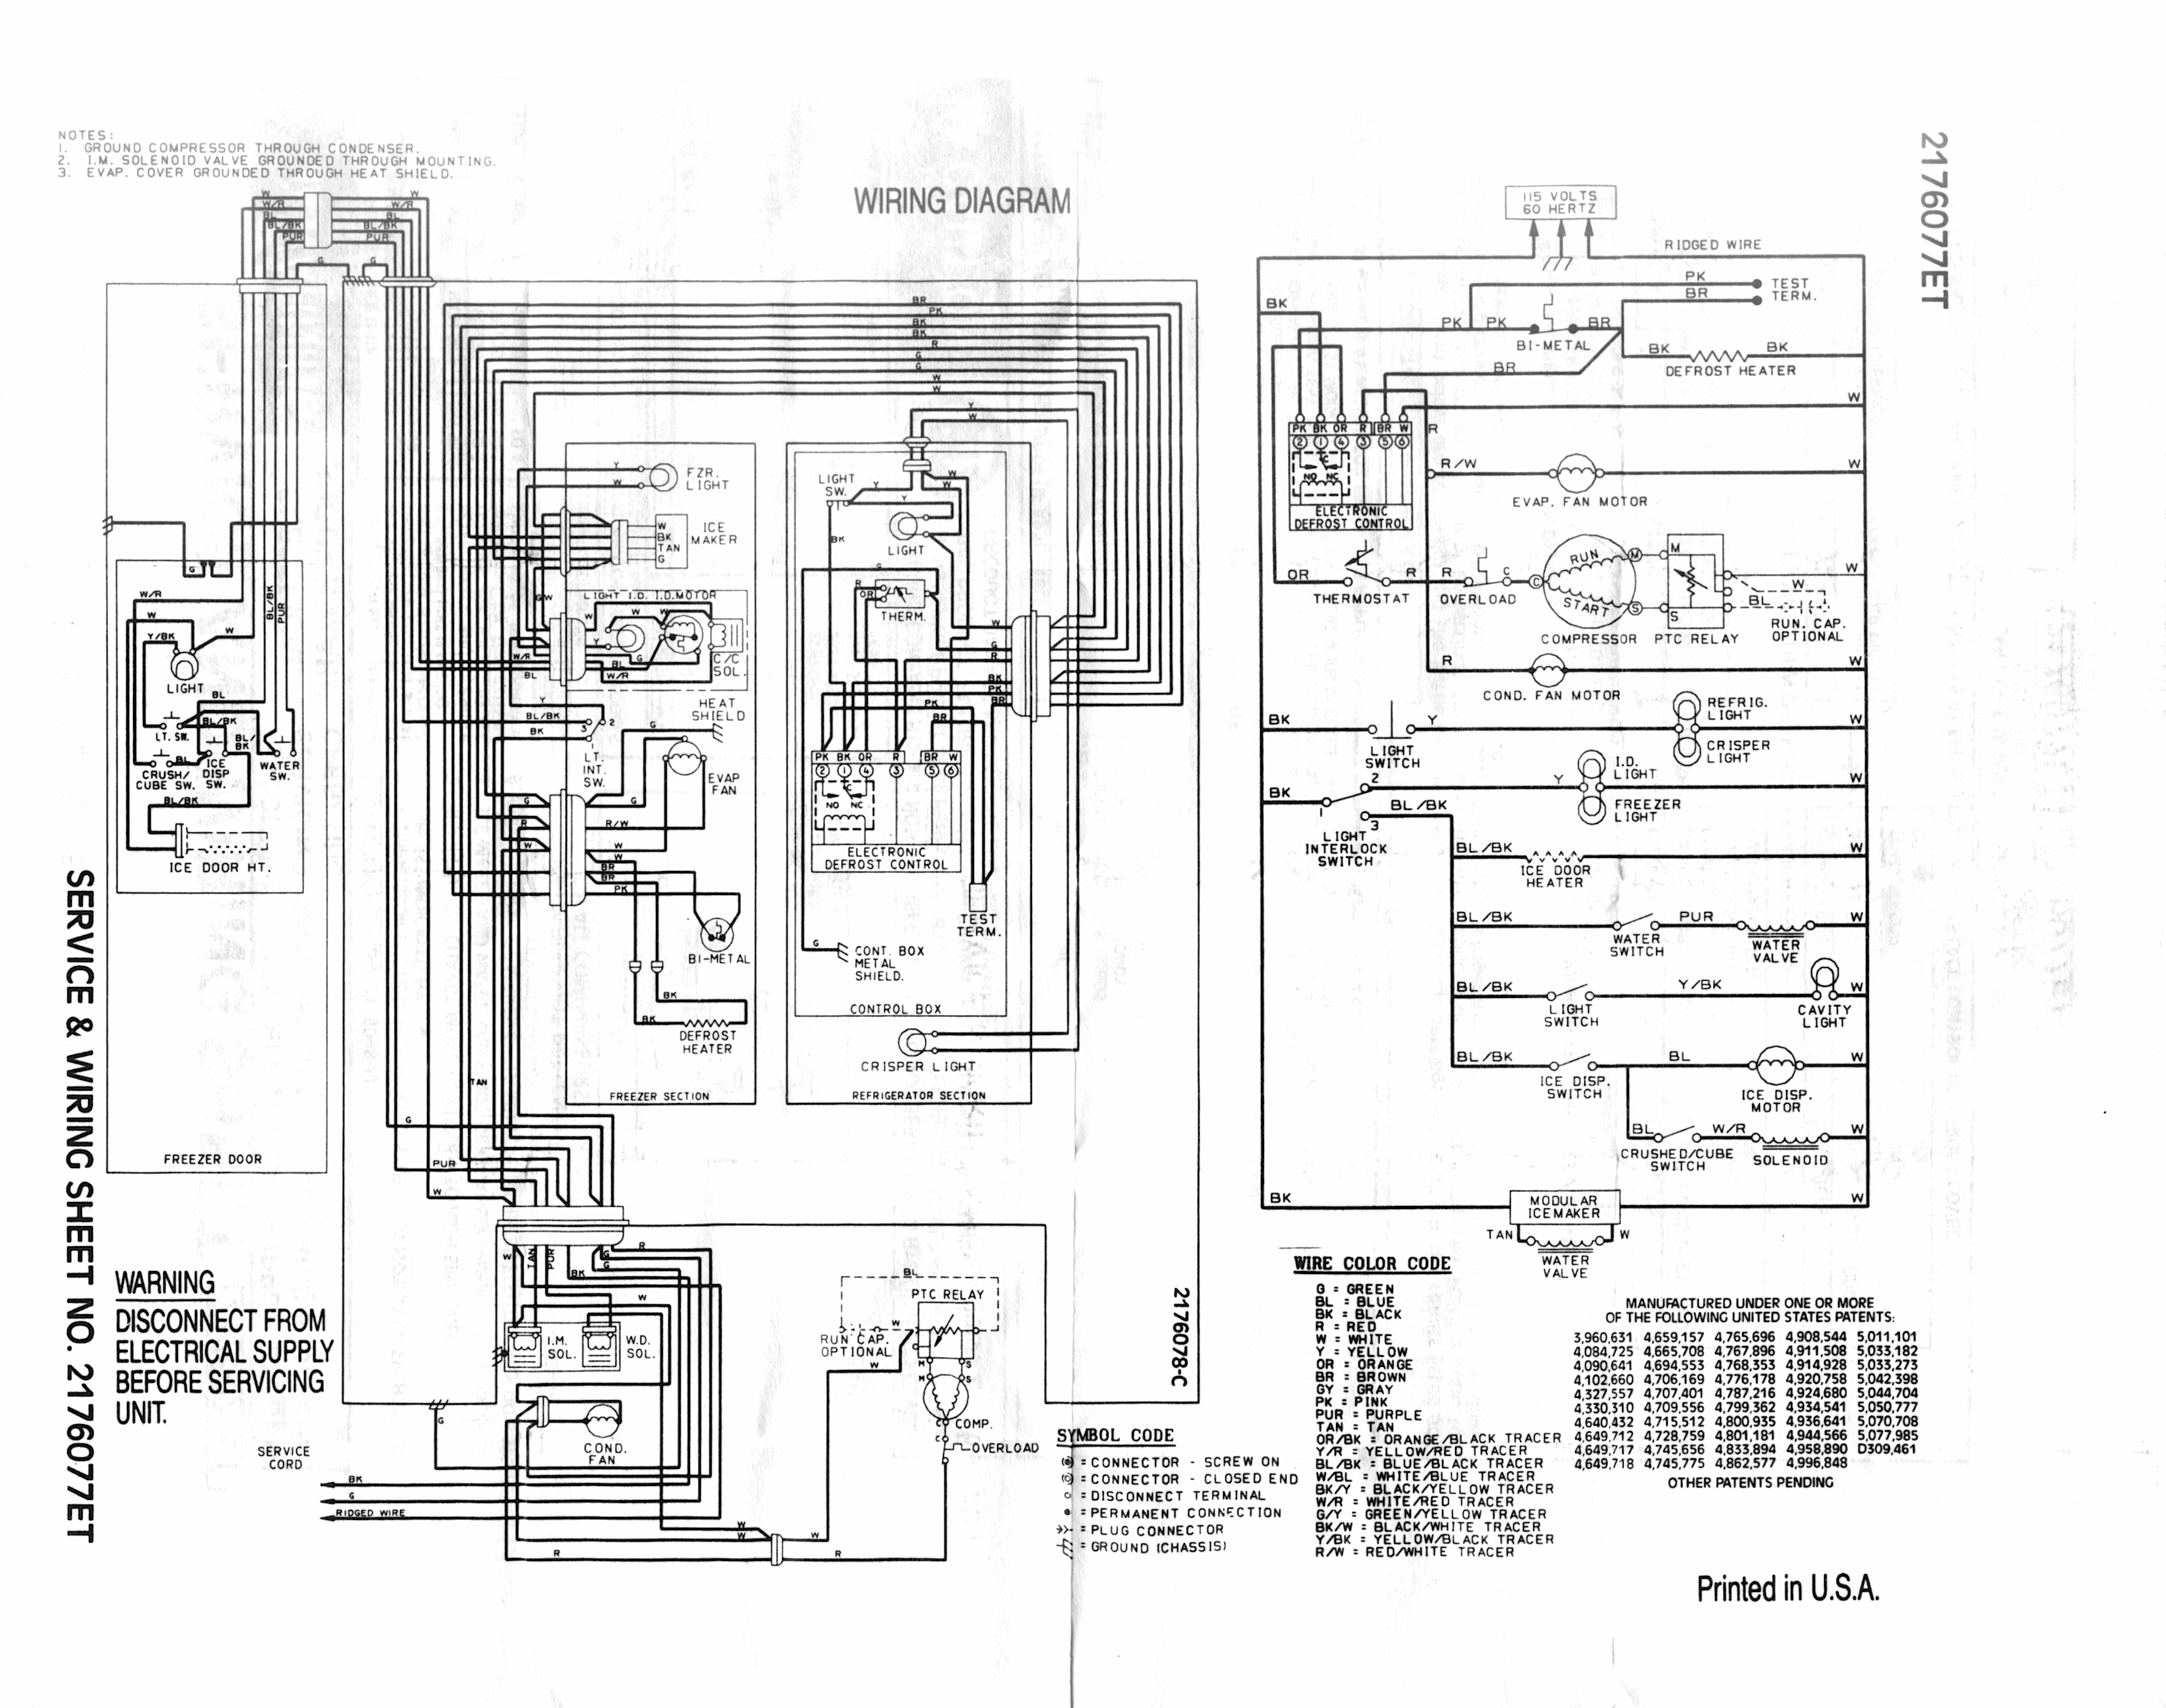 fridge schematics wiring diagram missives rh porkrind org Basic Wiring Schematics 262B Wiring Schematic for A